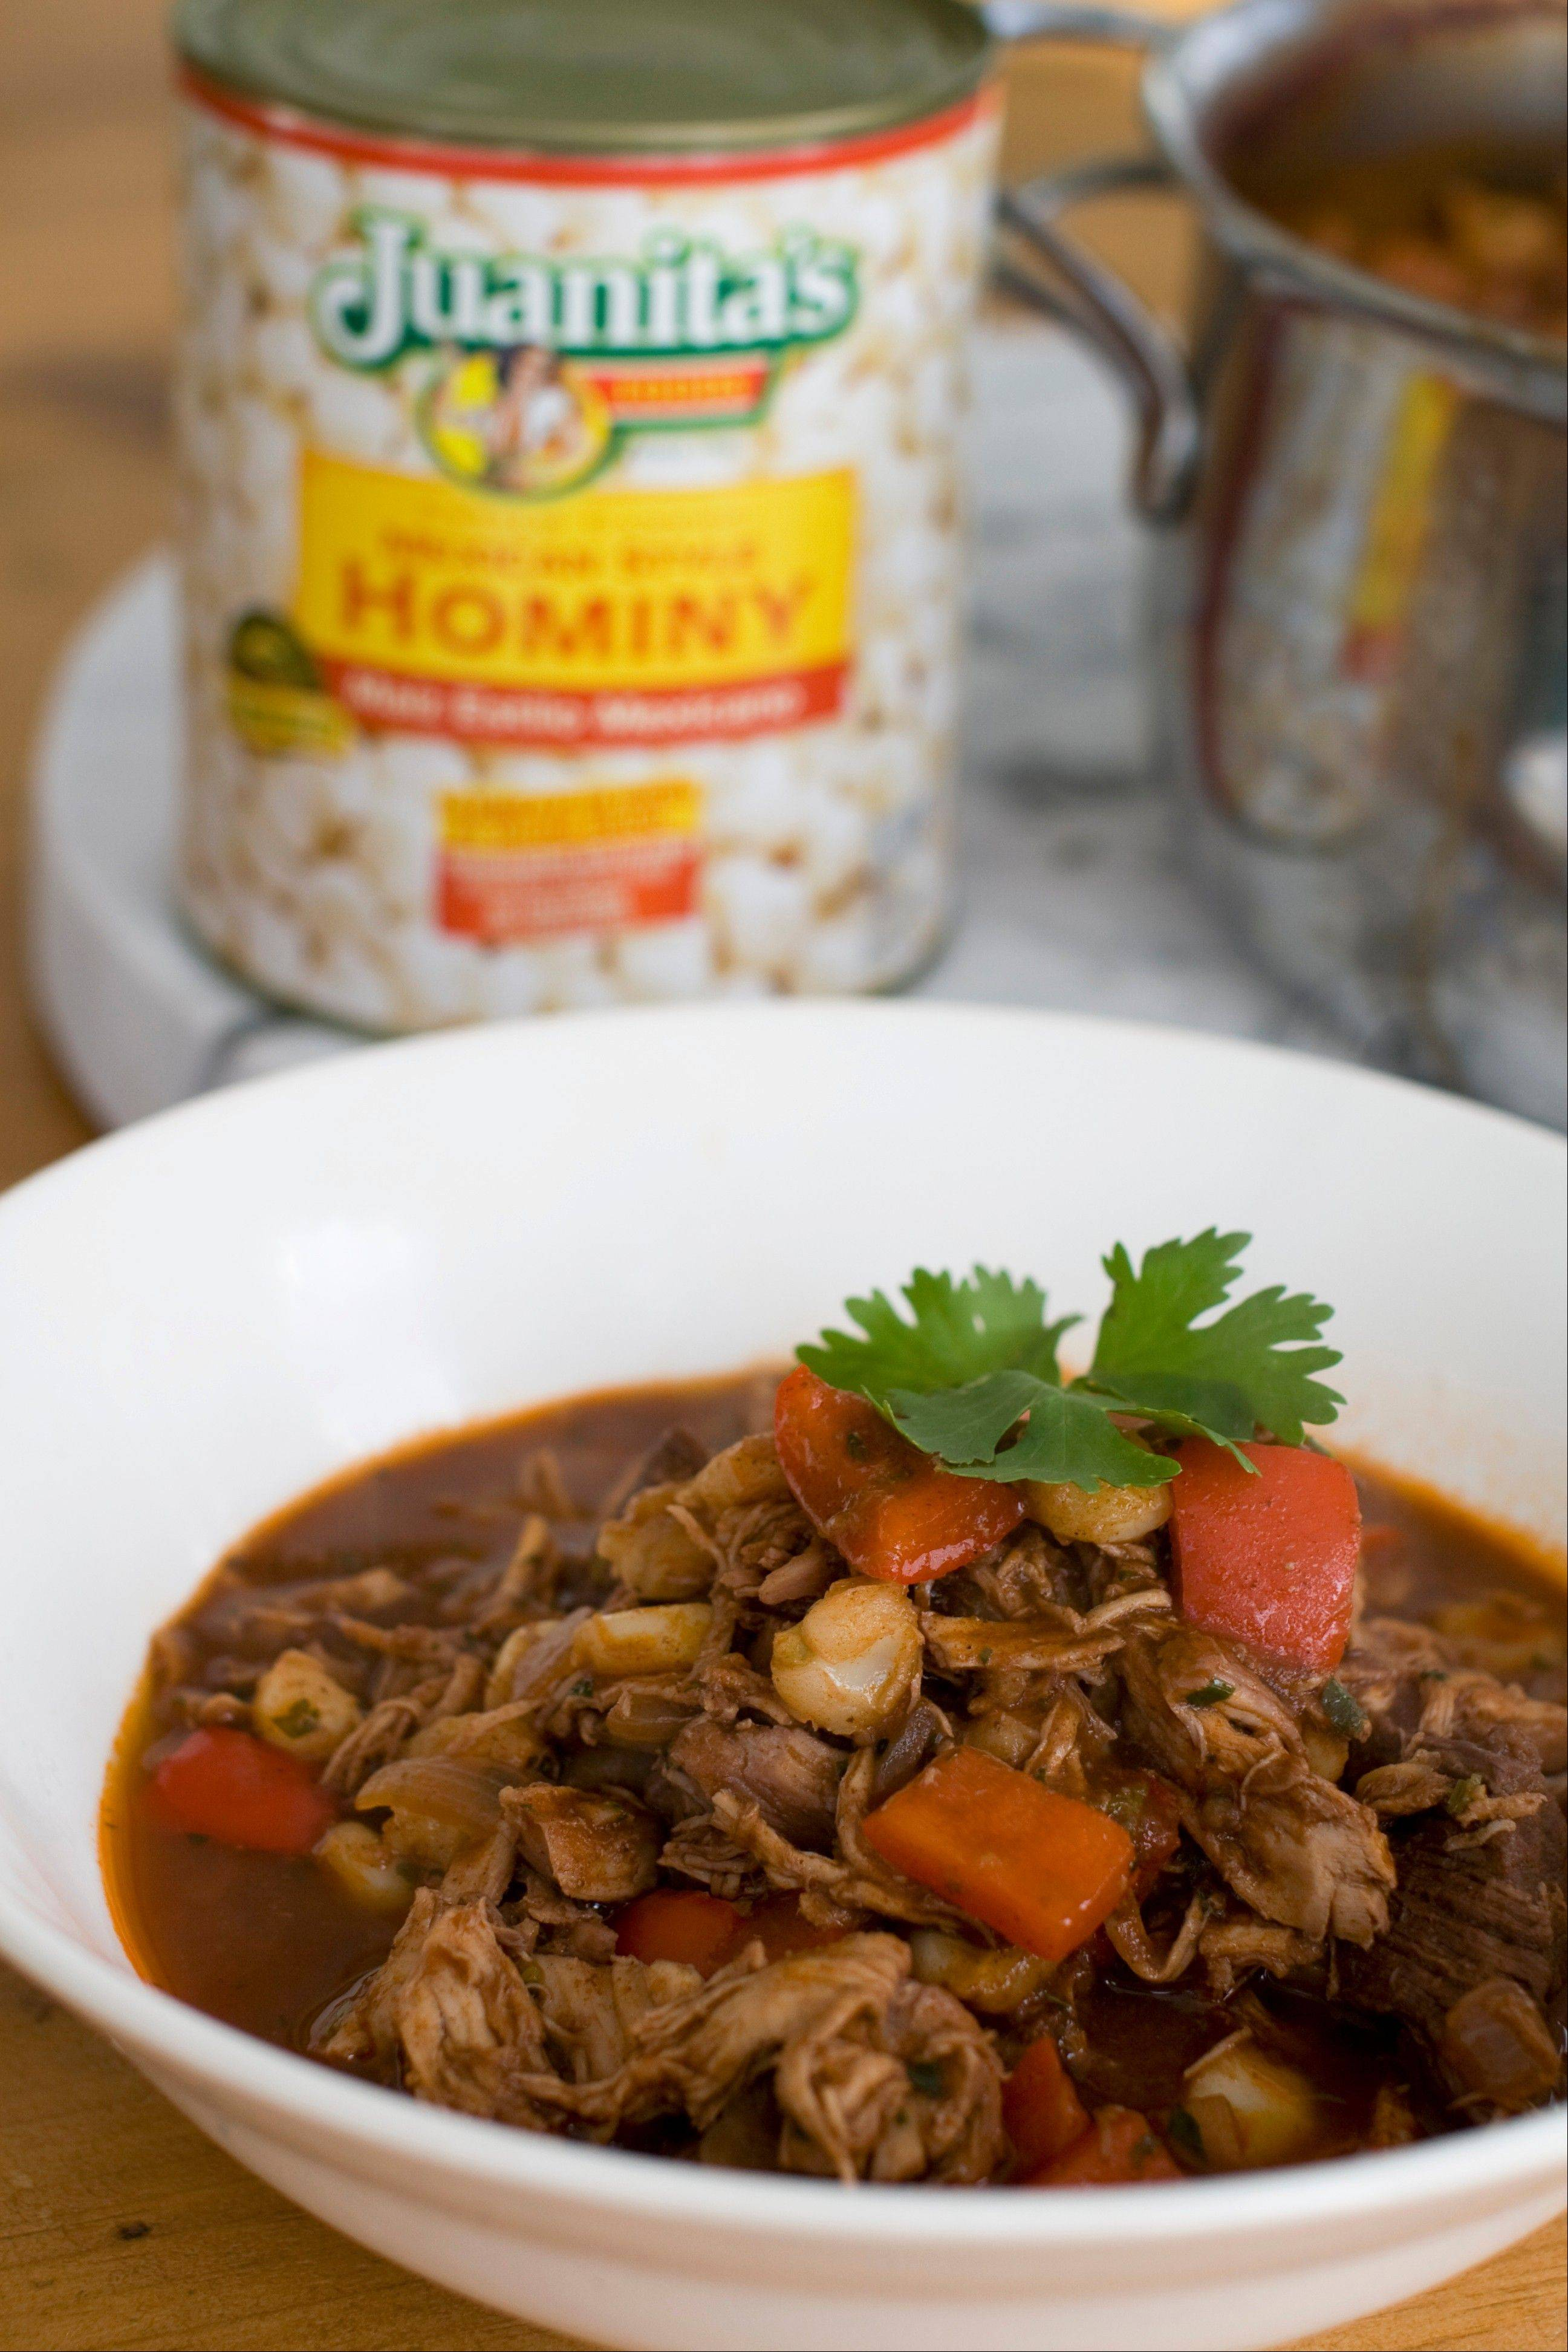 Hominy lends a fresh, tender corn flavor to a rich stew of pulled chicken and seared steak tips.